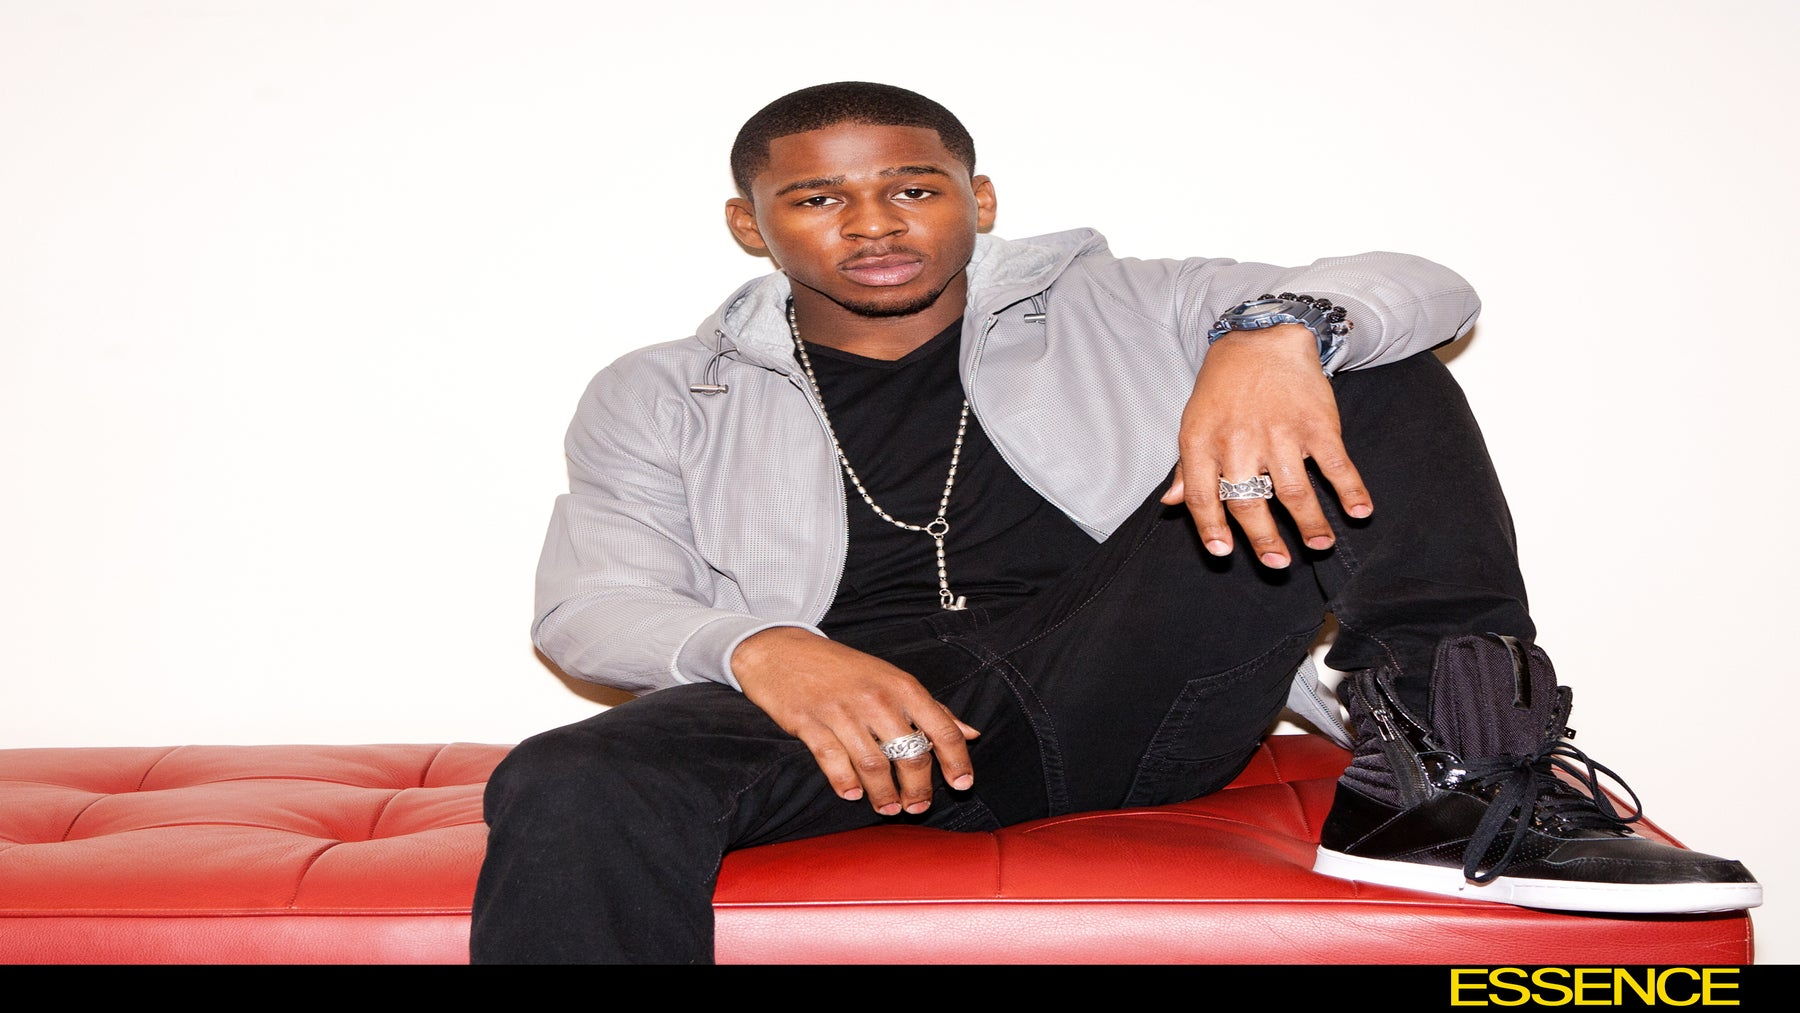 Marcus Canty Talks New EP, Going from Hoop Dreams to Recording Studio